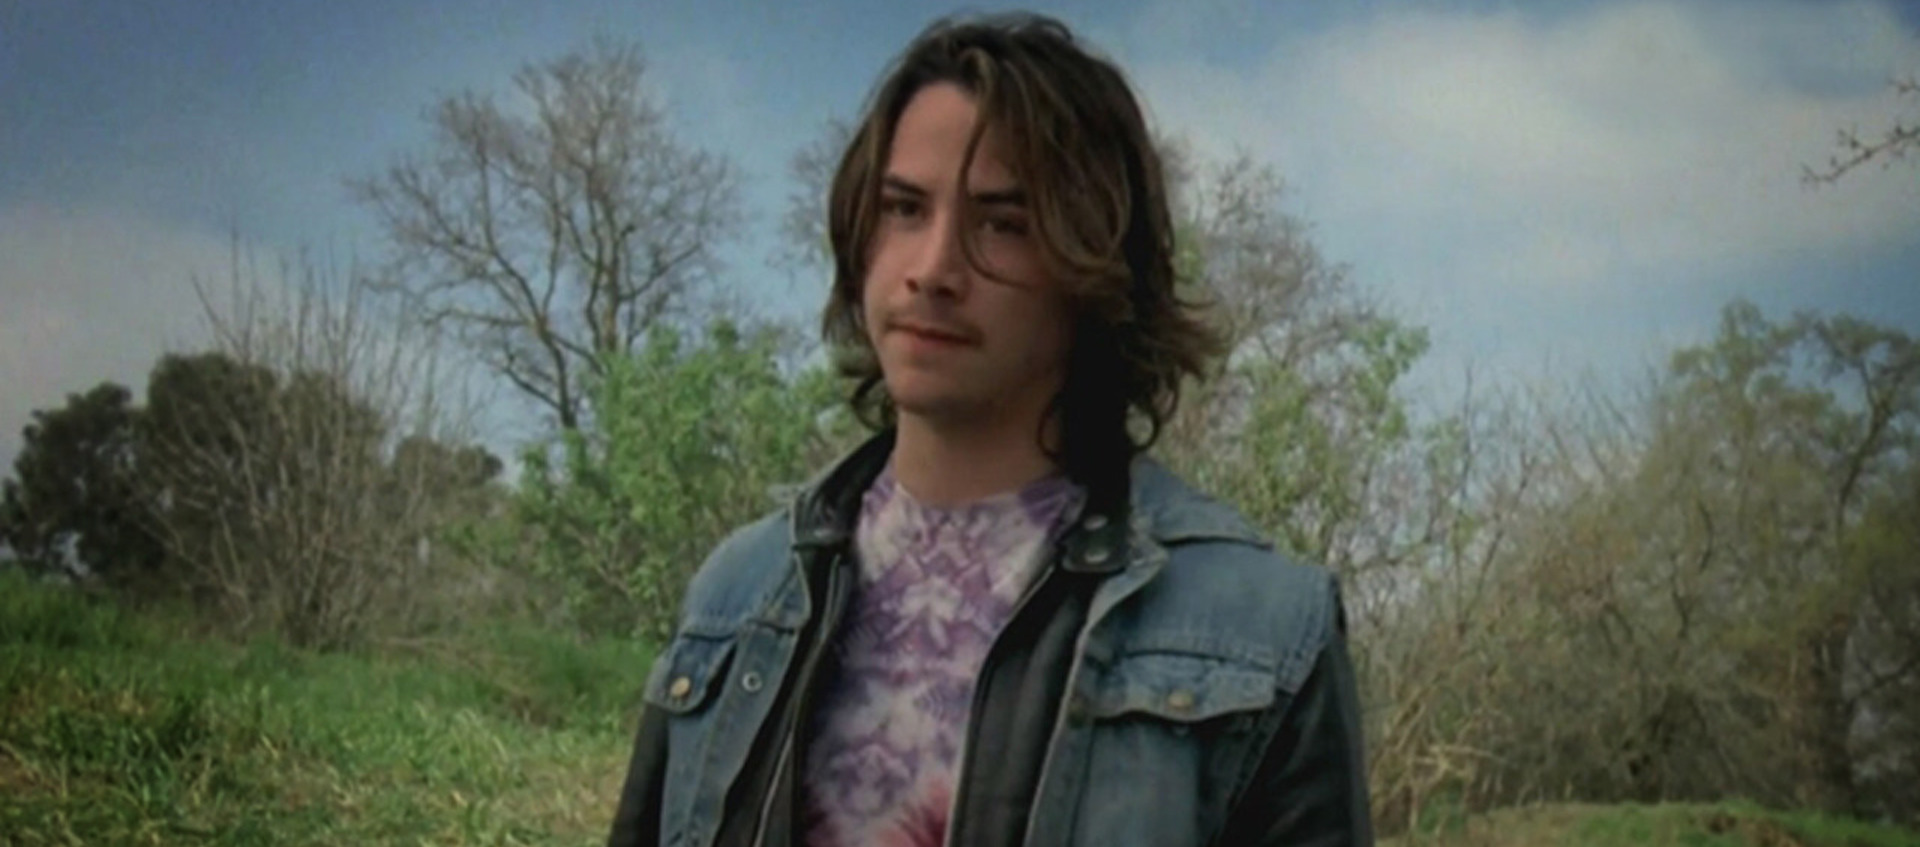 Color image of a young Keanu Reeves standing outdoors in front of grass and trees during the production of Tim Hunter's 1984 film River's Edge